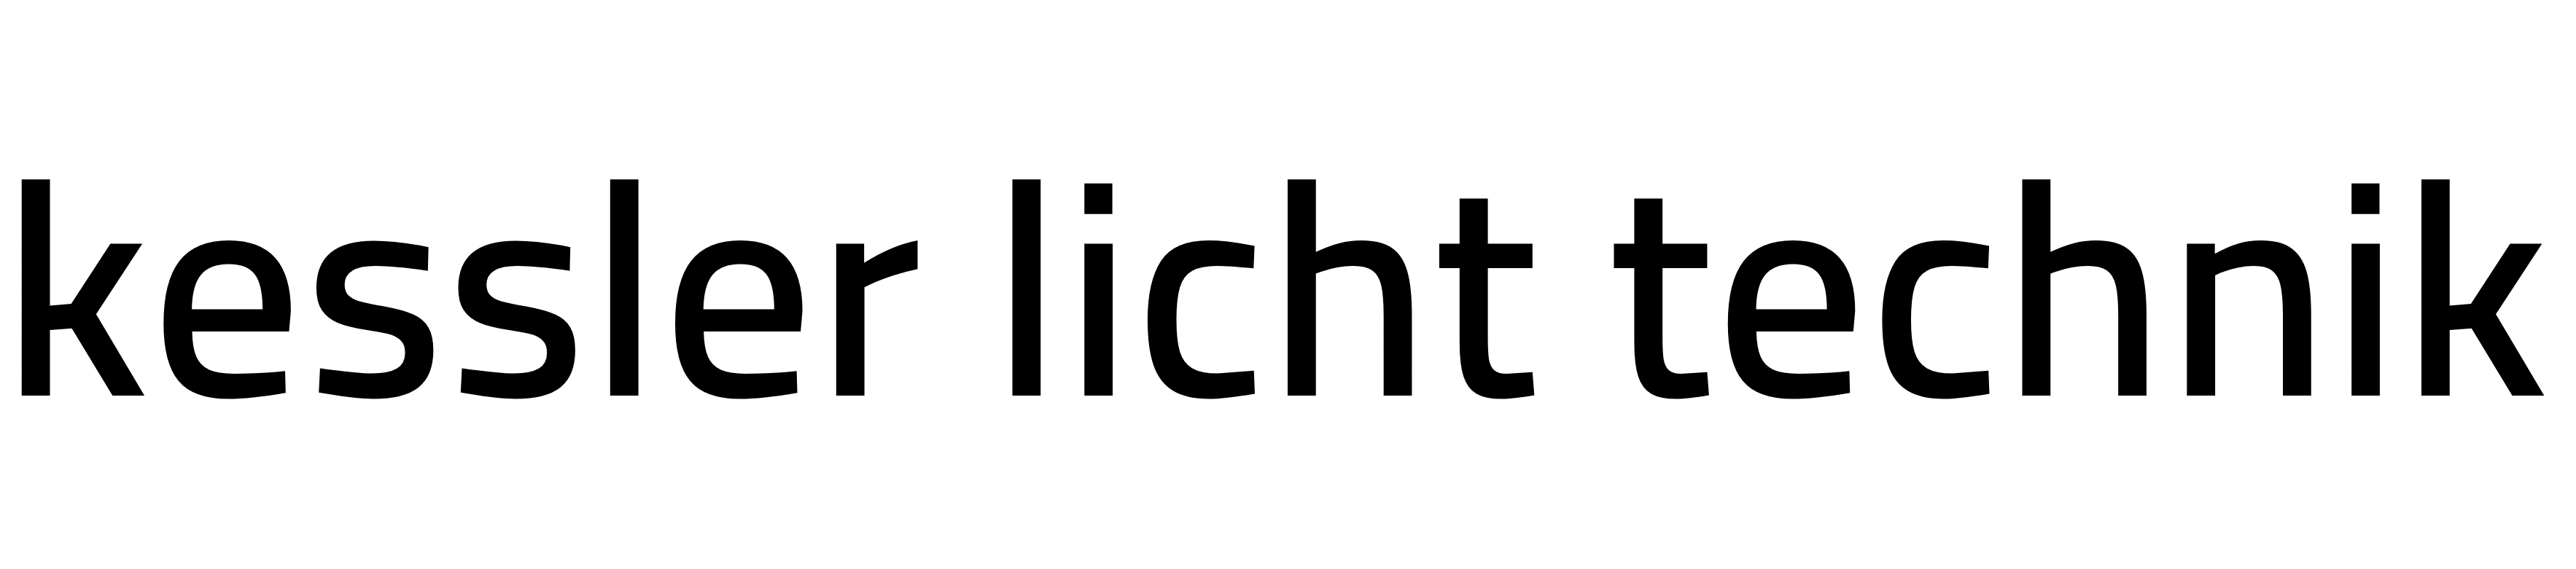 Licht Technik Kessler Licht Technik Gmbh I G Ambista B2b Network Of The